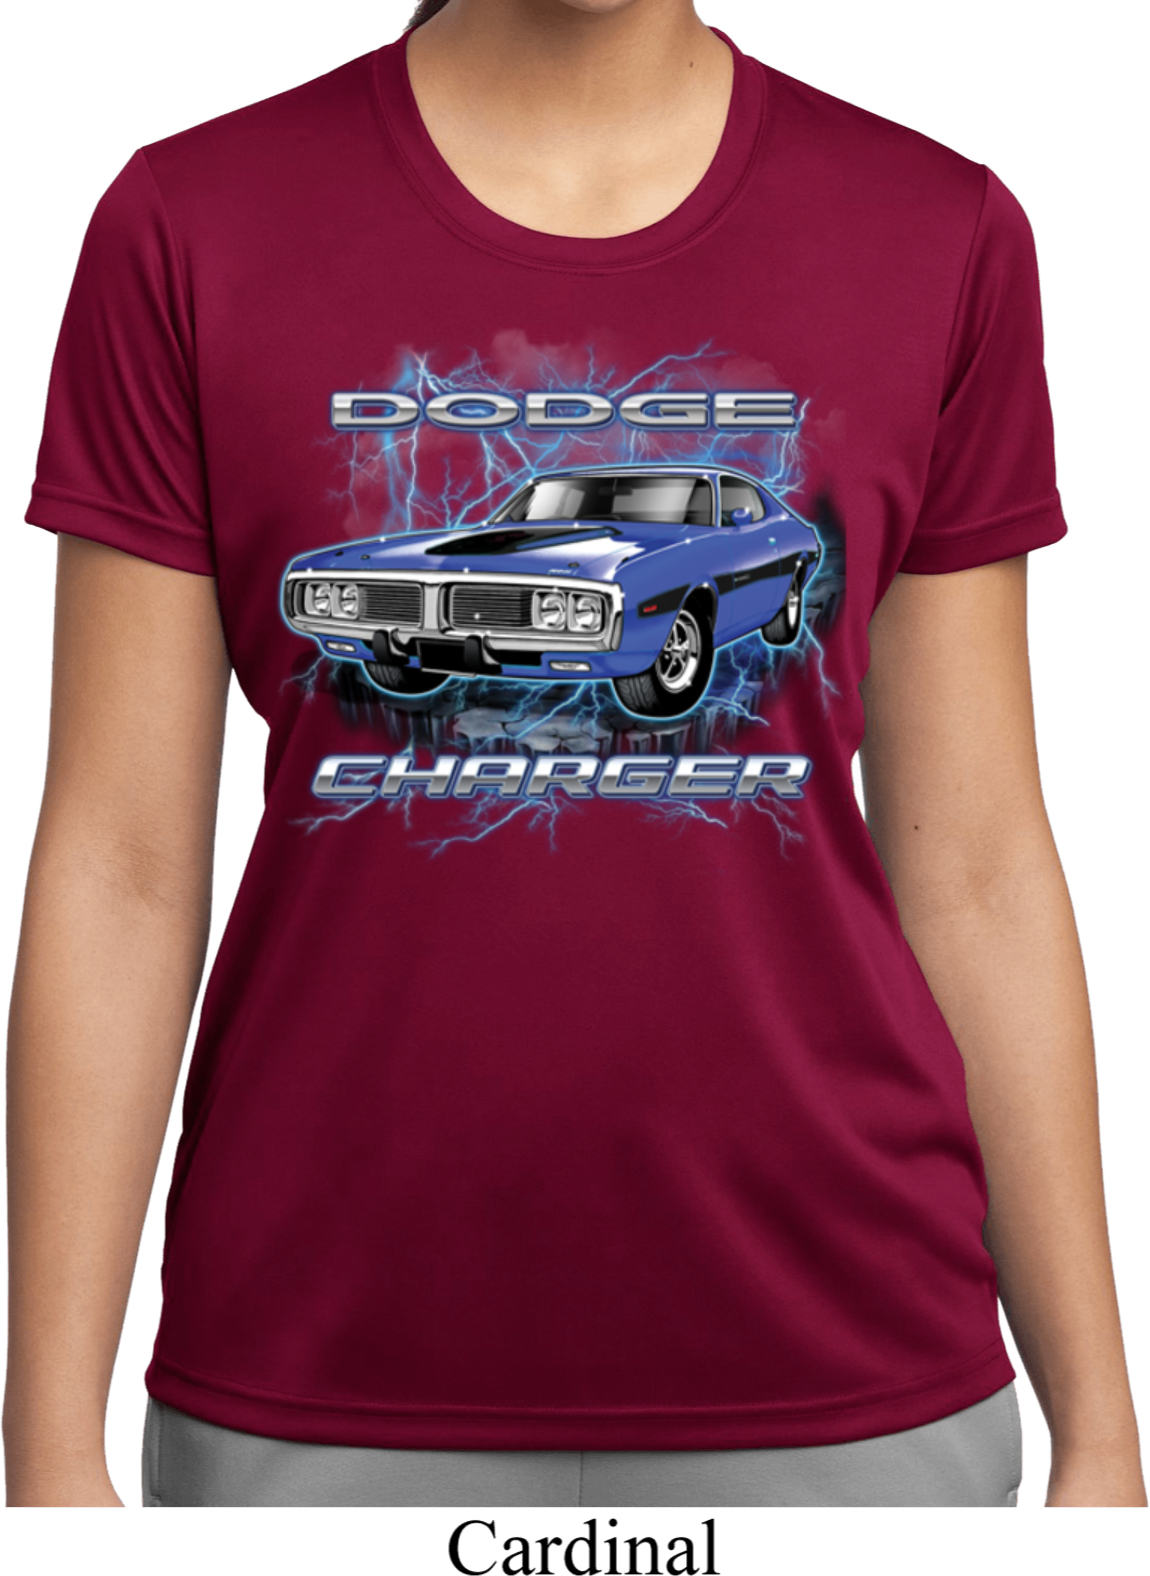 Ladies dodge shirt blue dodge charger moisture wicking tee for Sweat wicking t shirts